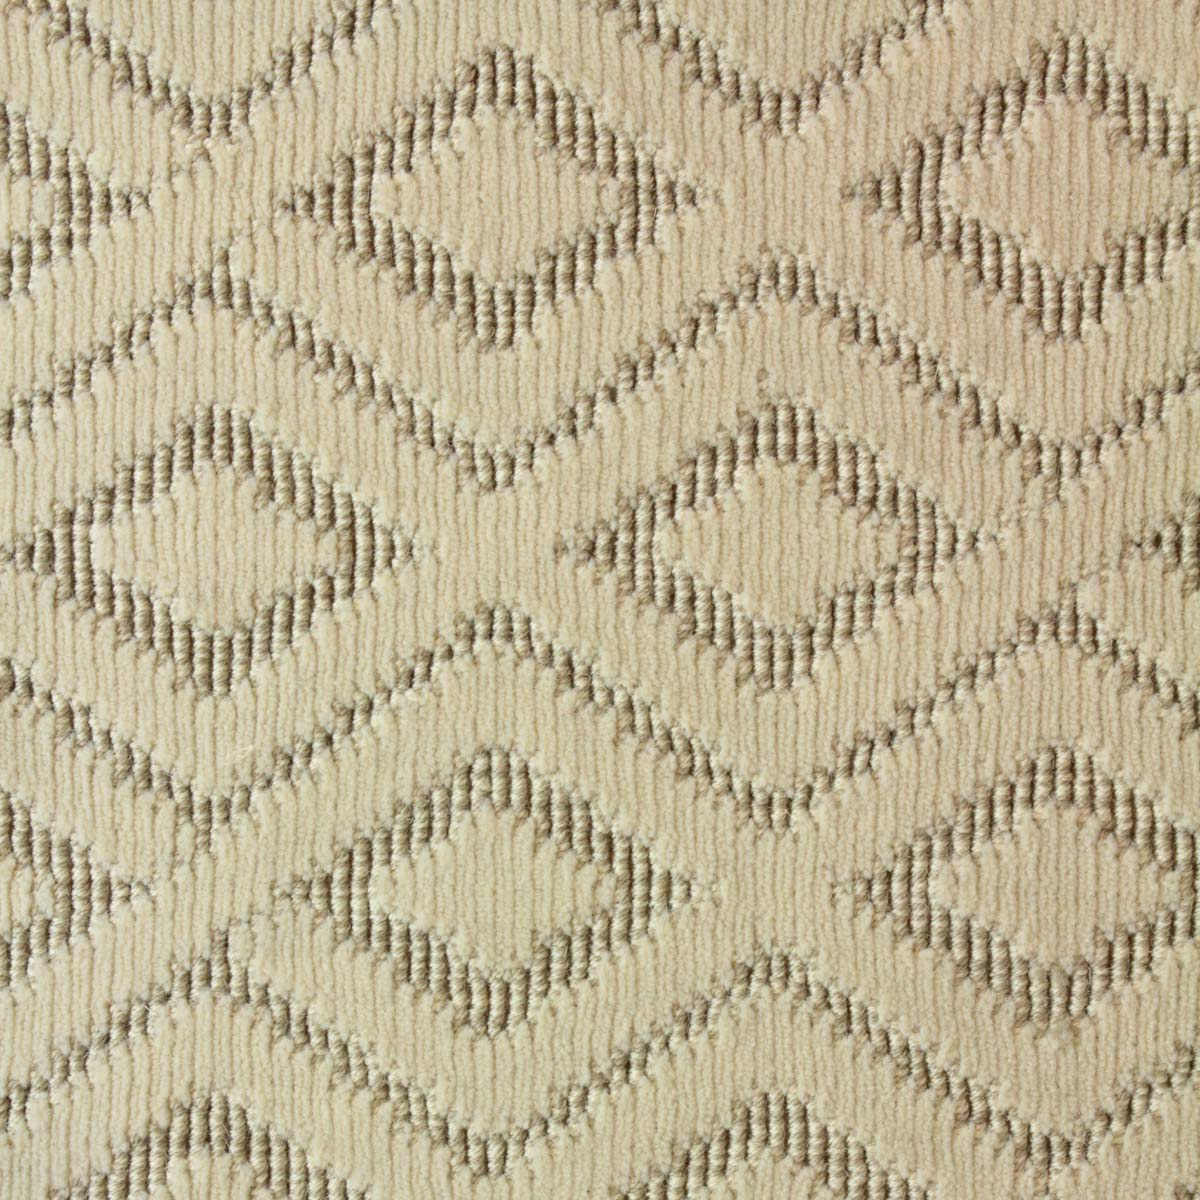 Anker Patterns Carpets Collection Tim Page Carpets